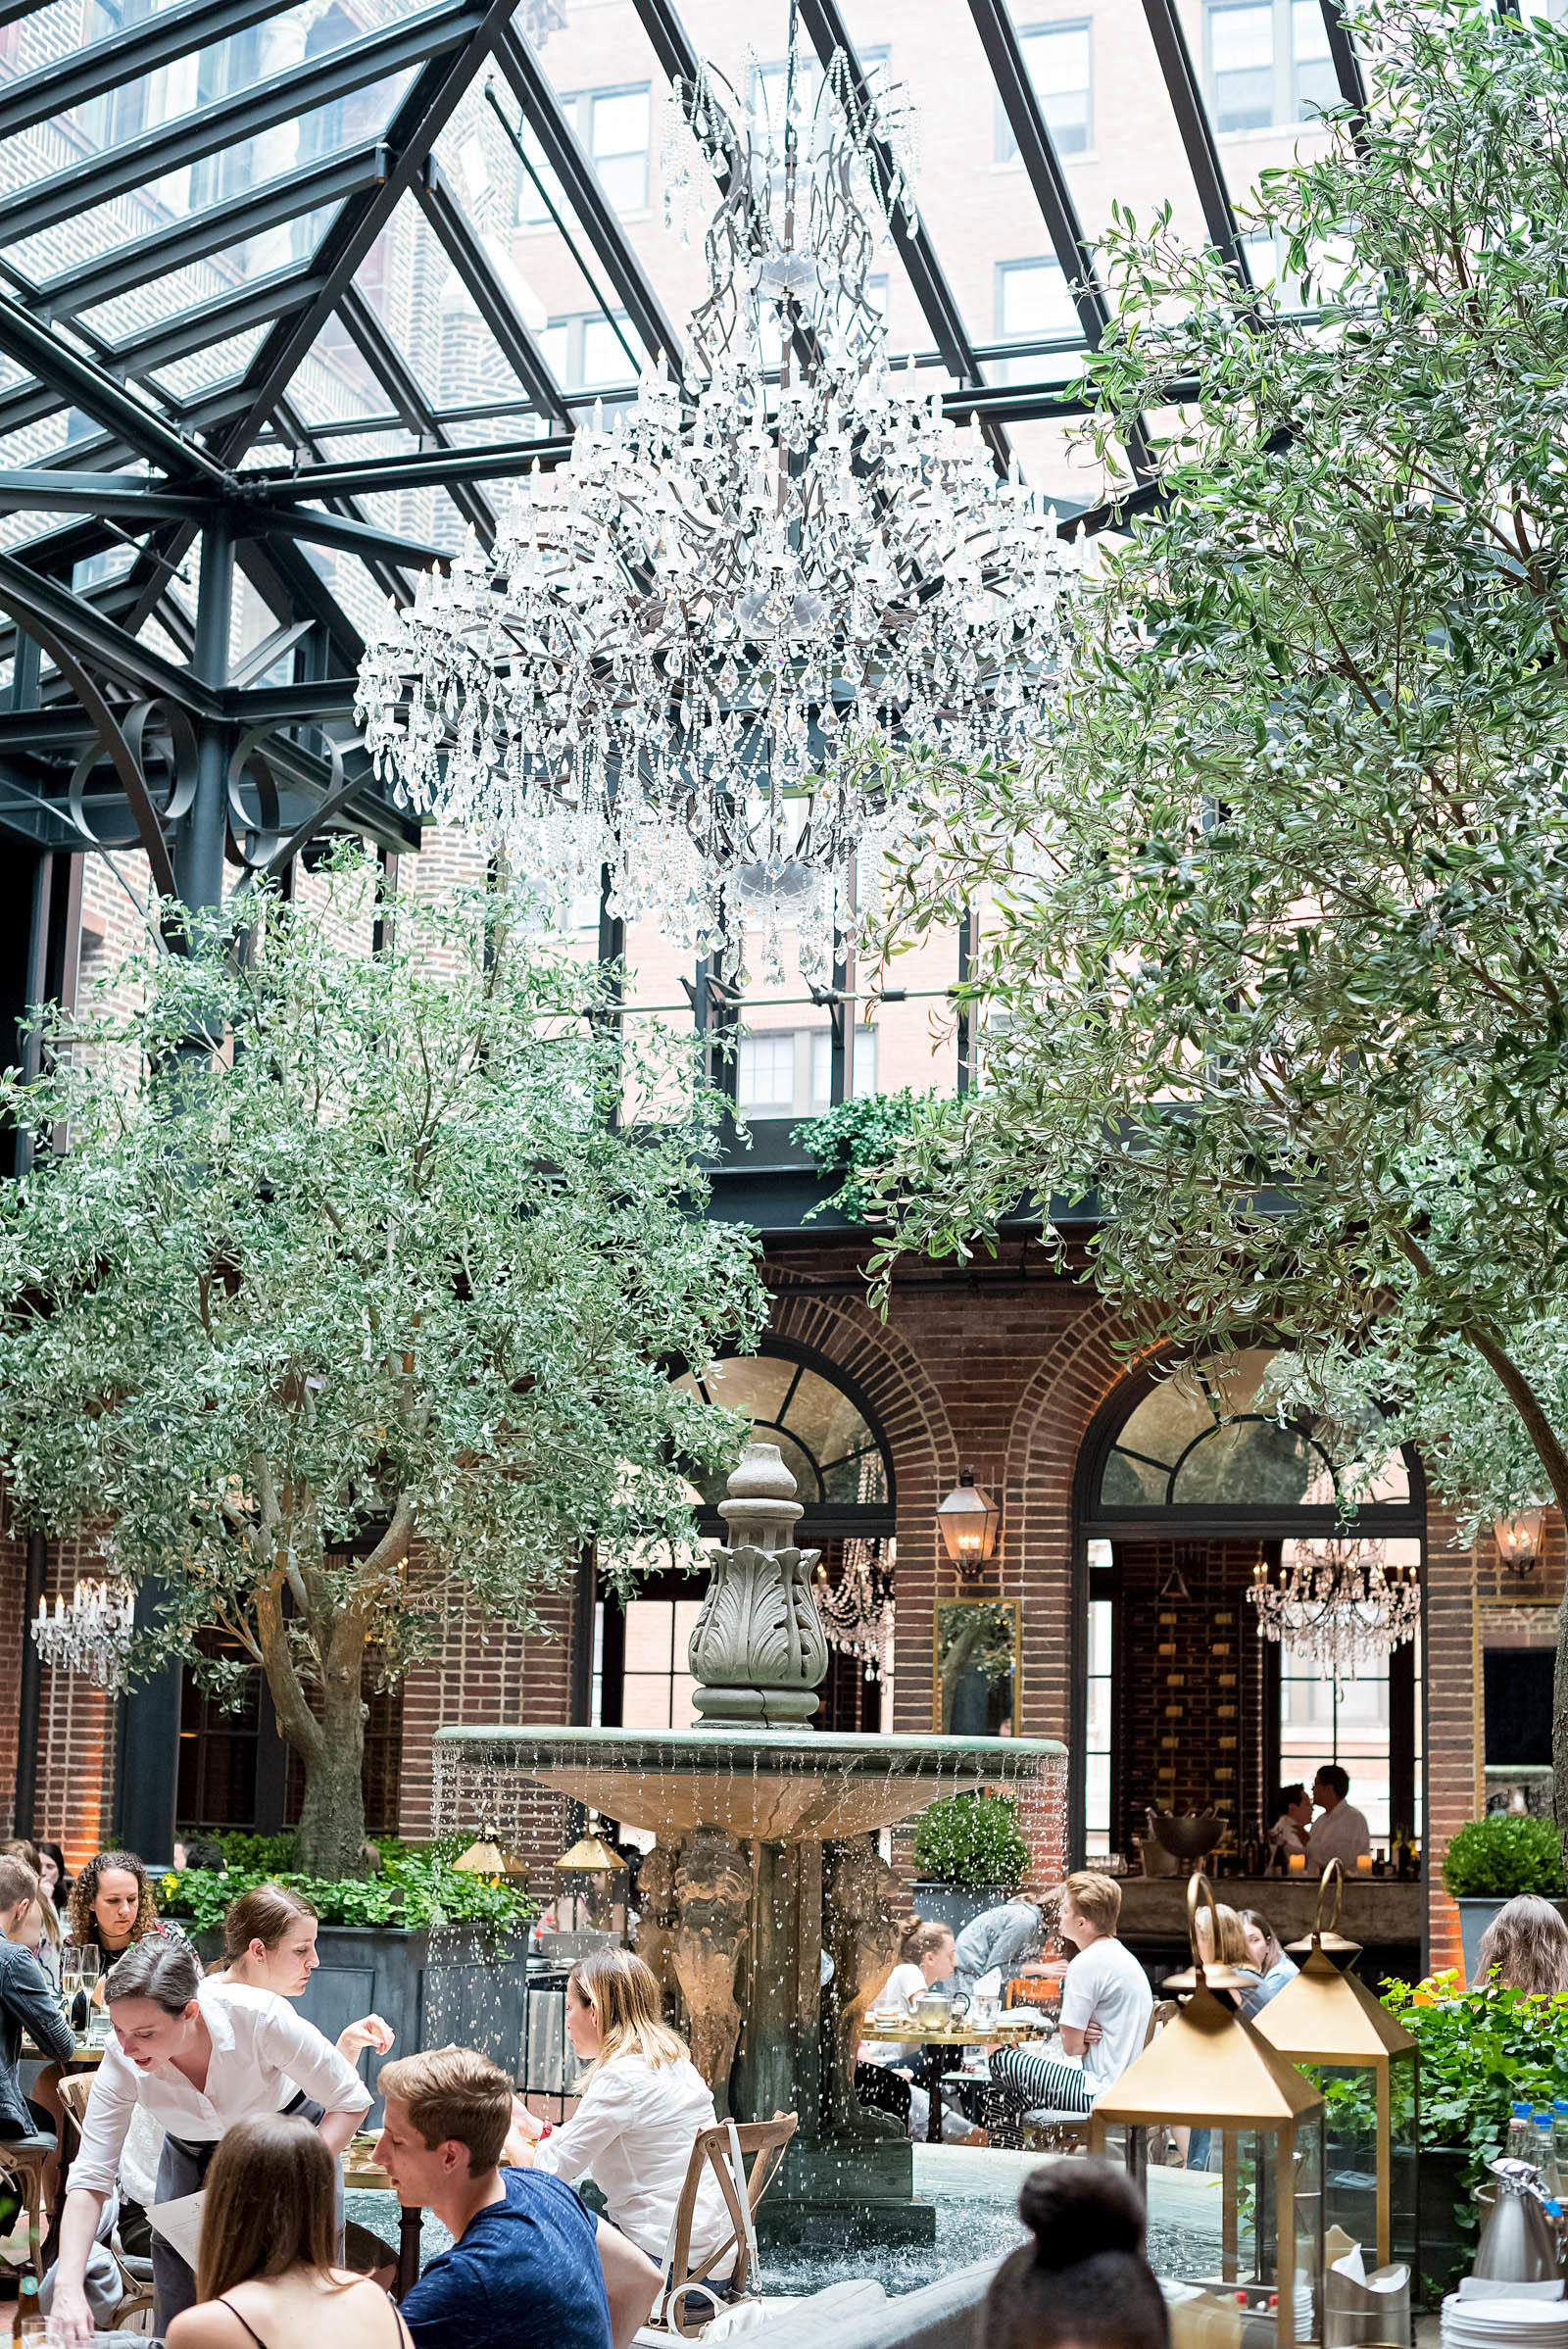 Three Arts Cafe Chicago Restoration Hardware Fountain